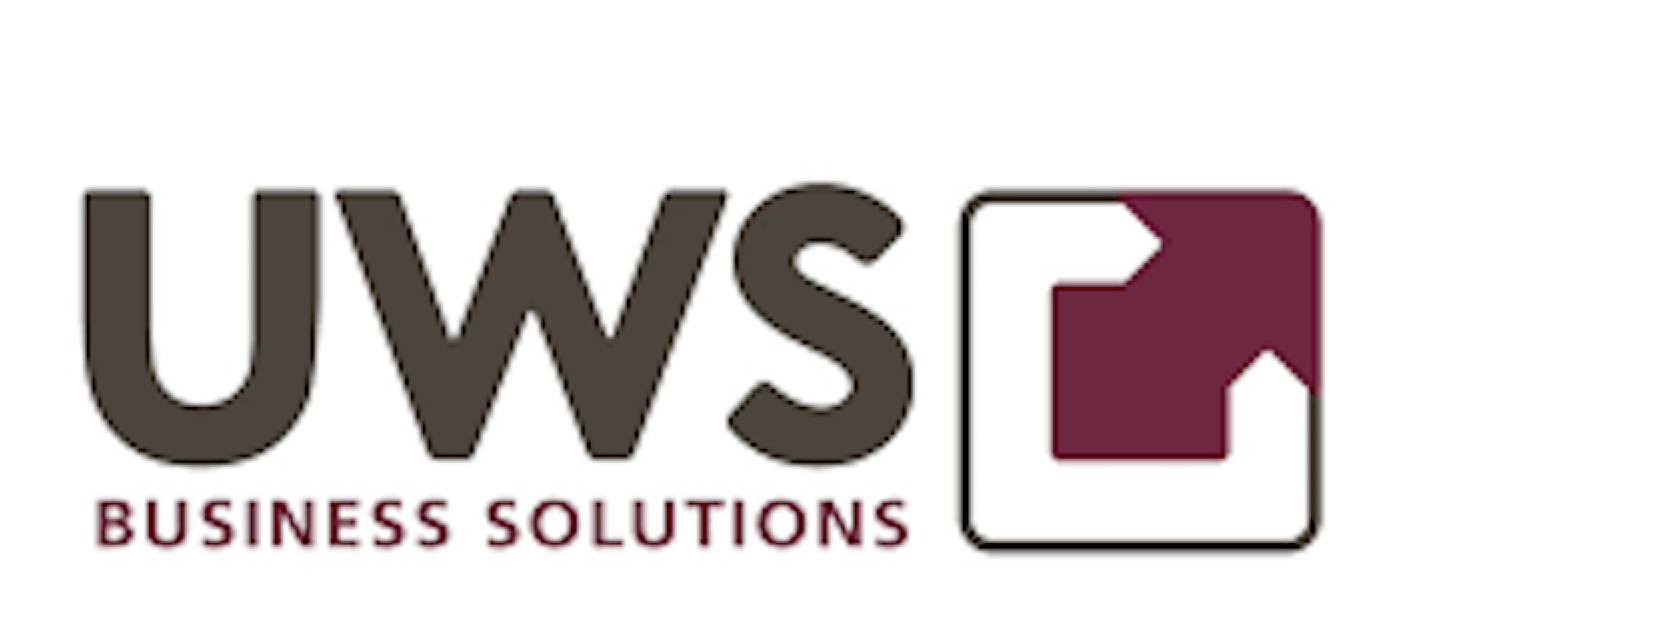 Unser Partner UWS Business Solutions